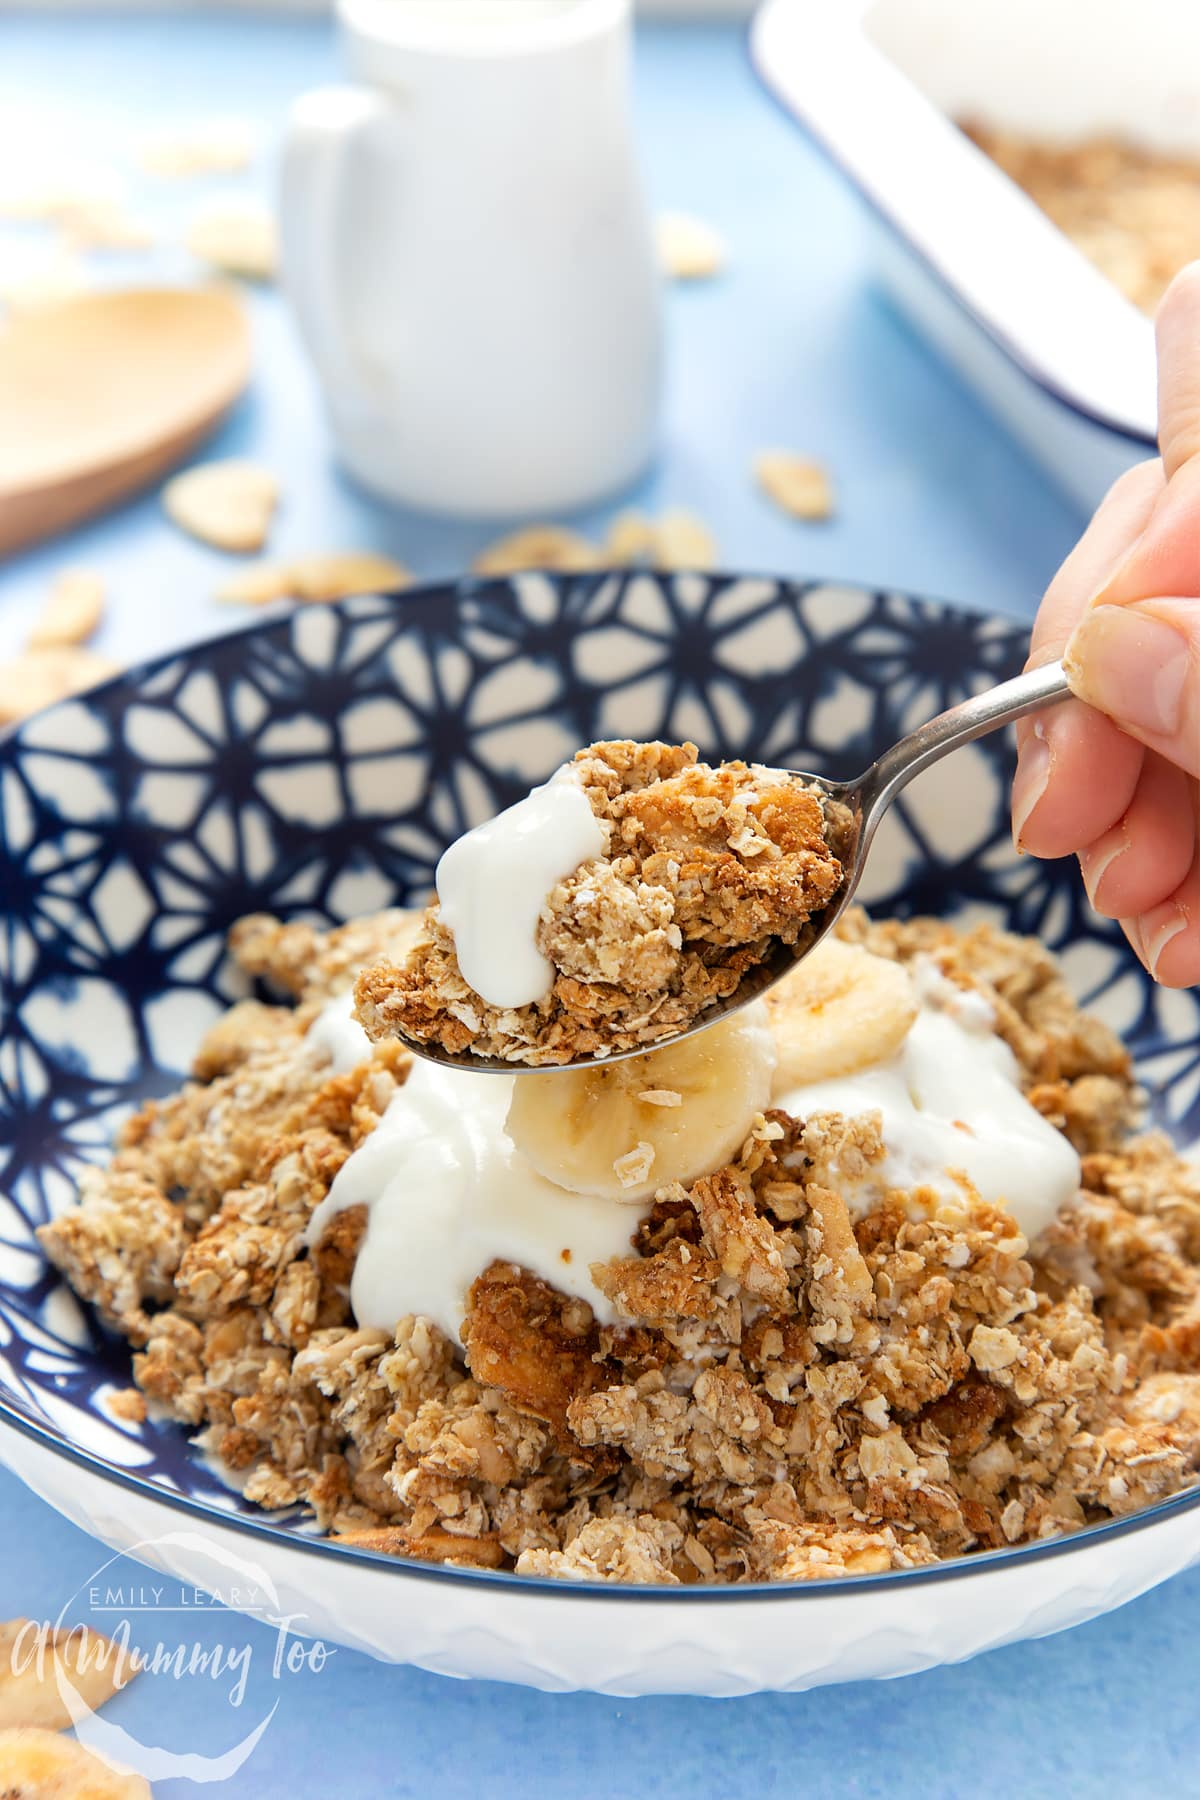 Banana coconut granola in a bowl, topped with yogurt and fresh banana slices. A hand holds a spoon filled with granola.